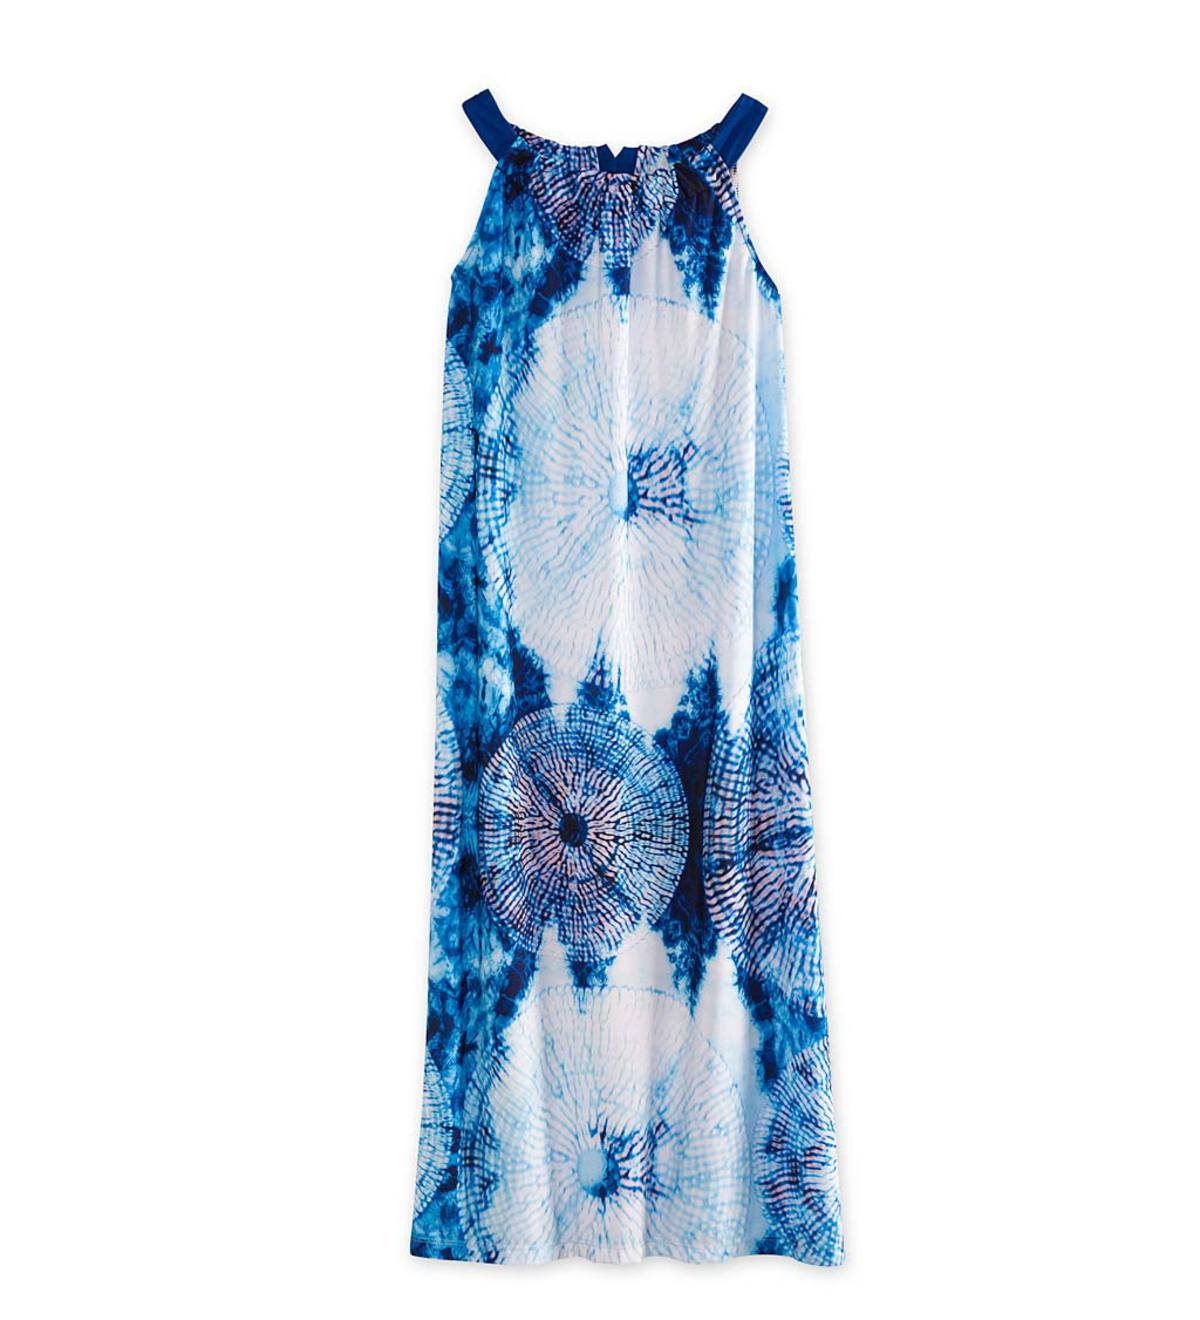 Tie Dye Maxi Dress - Navy - 4